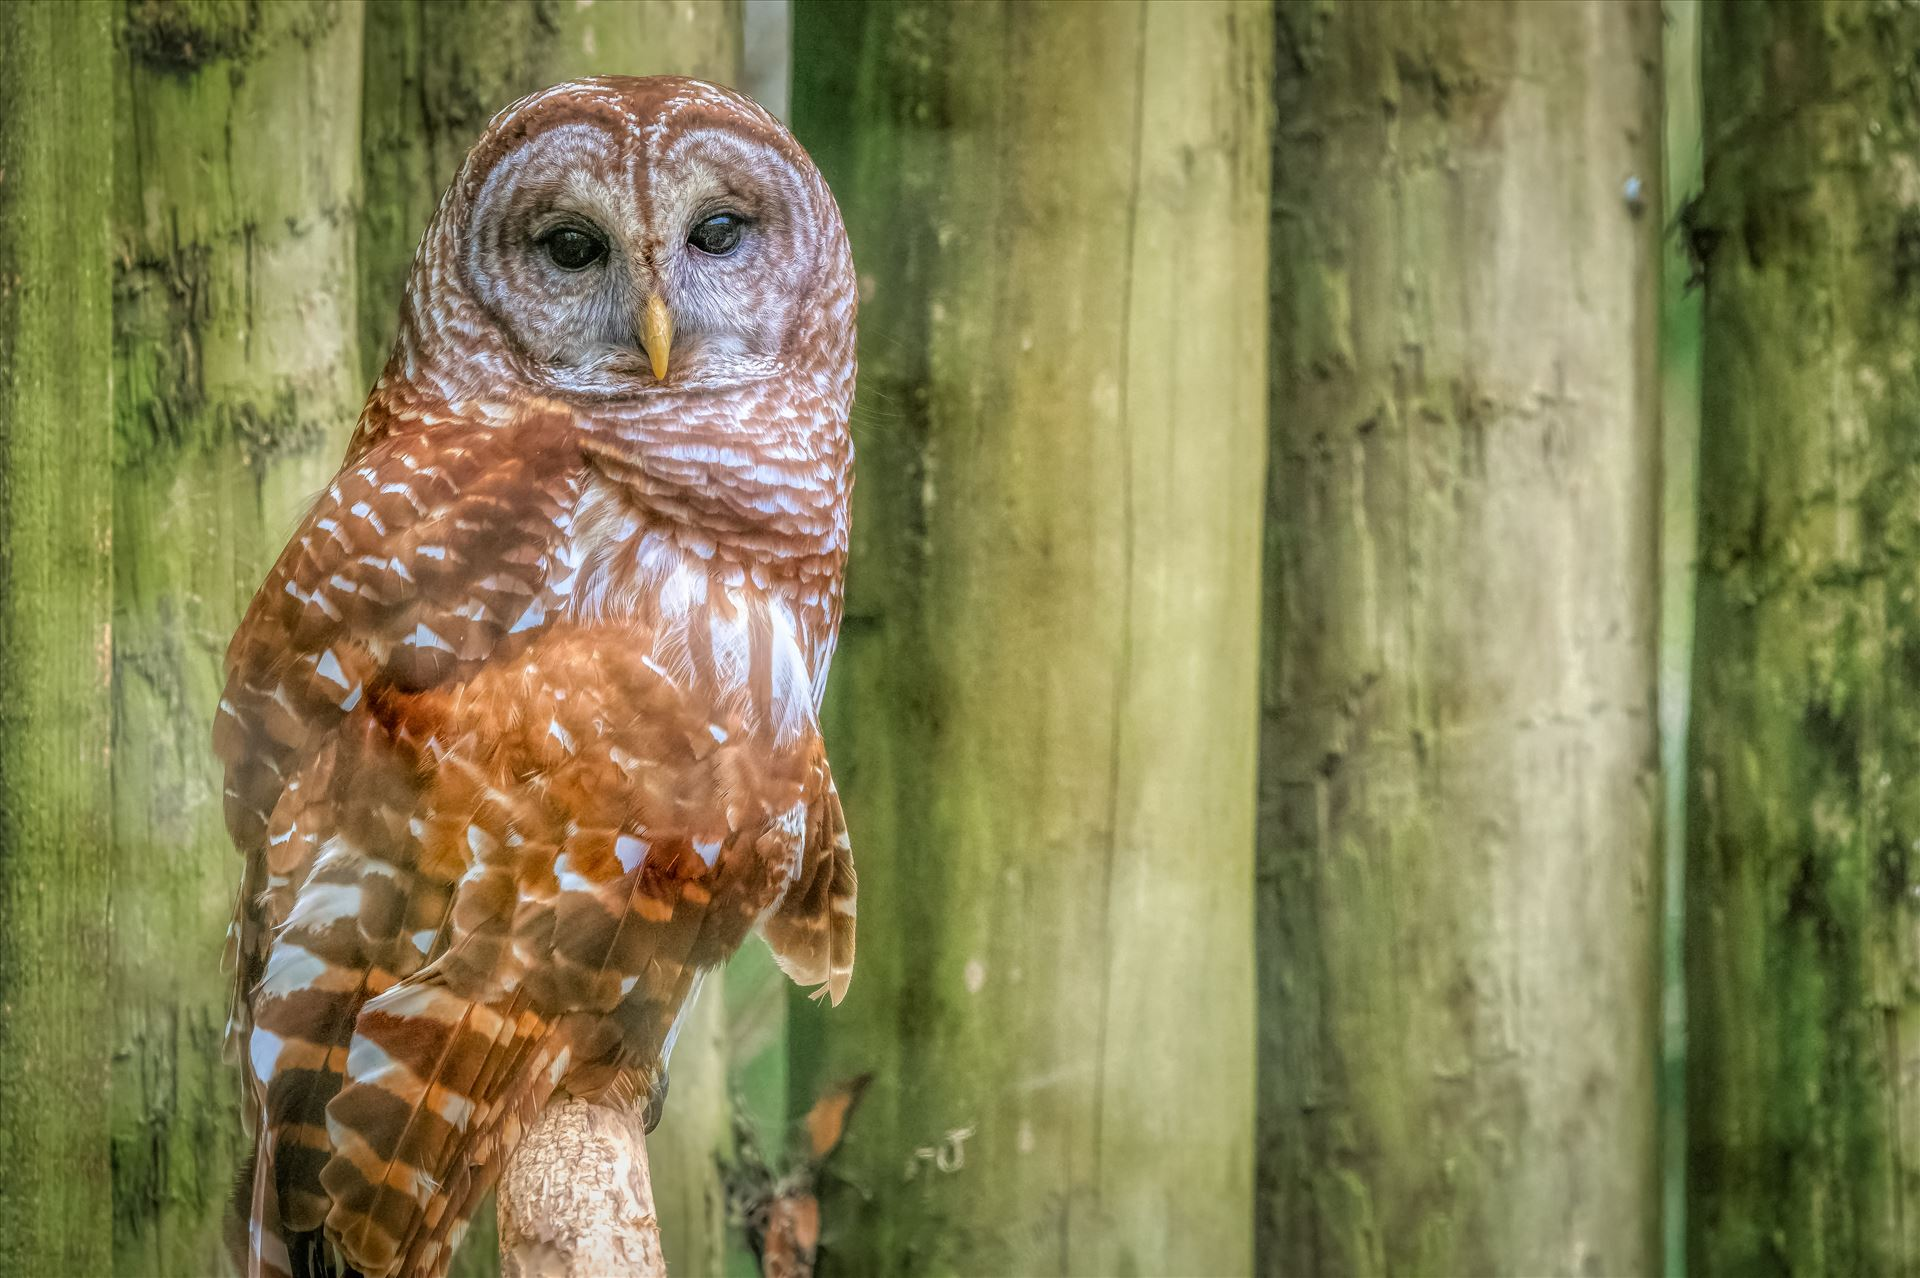 Barred Owl - Perched Barred Owl staring by Terry Kelly Photography